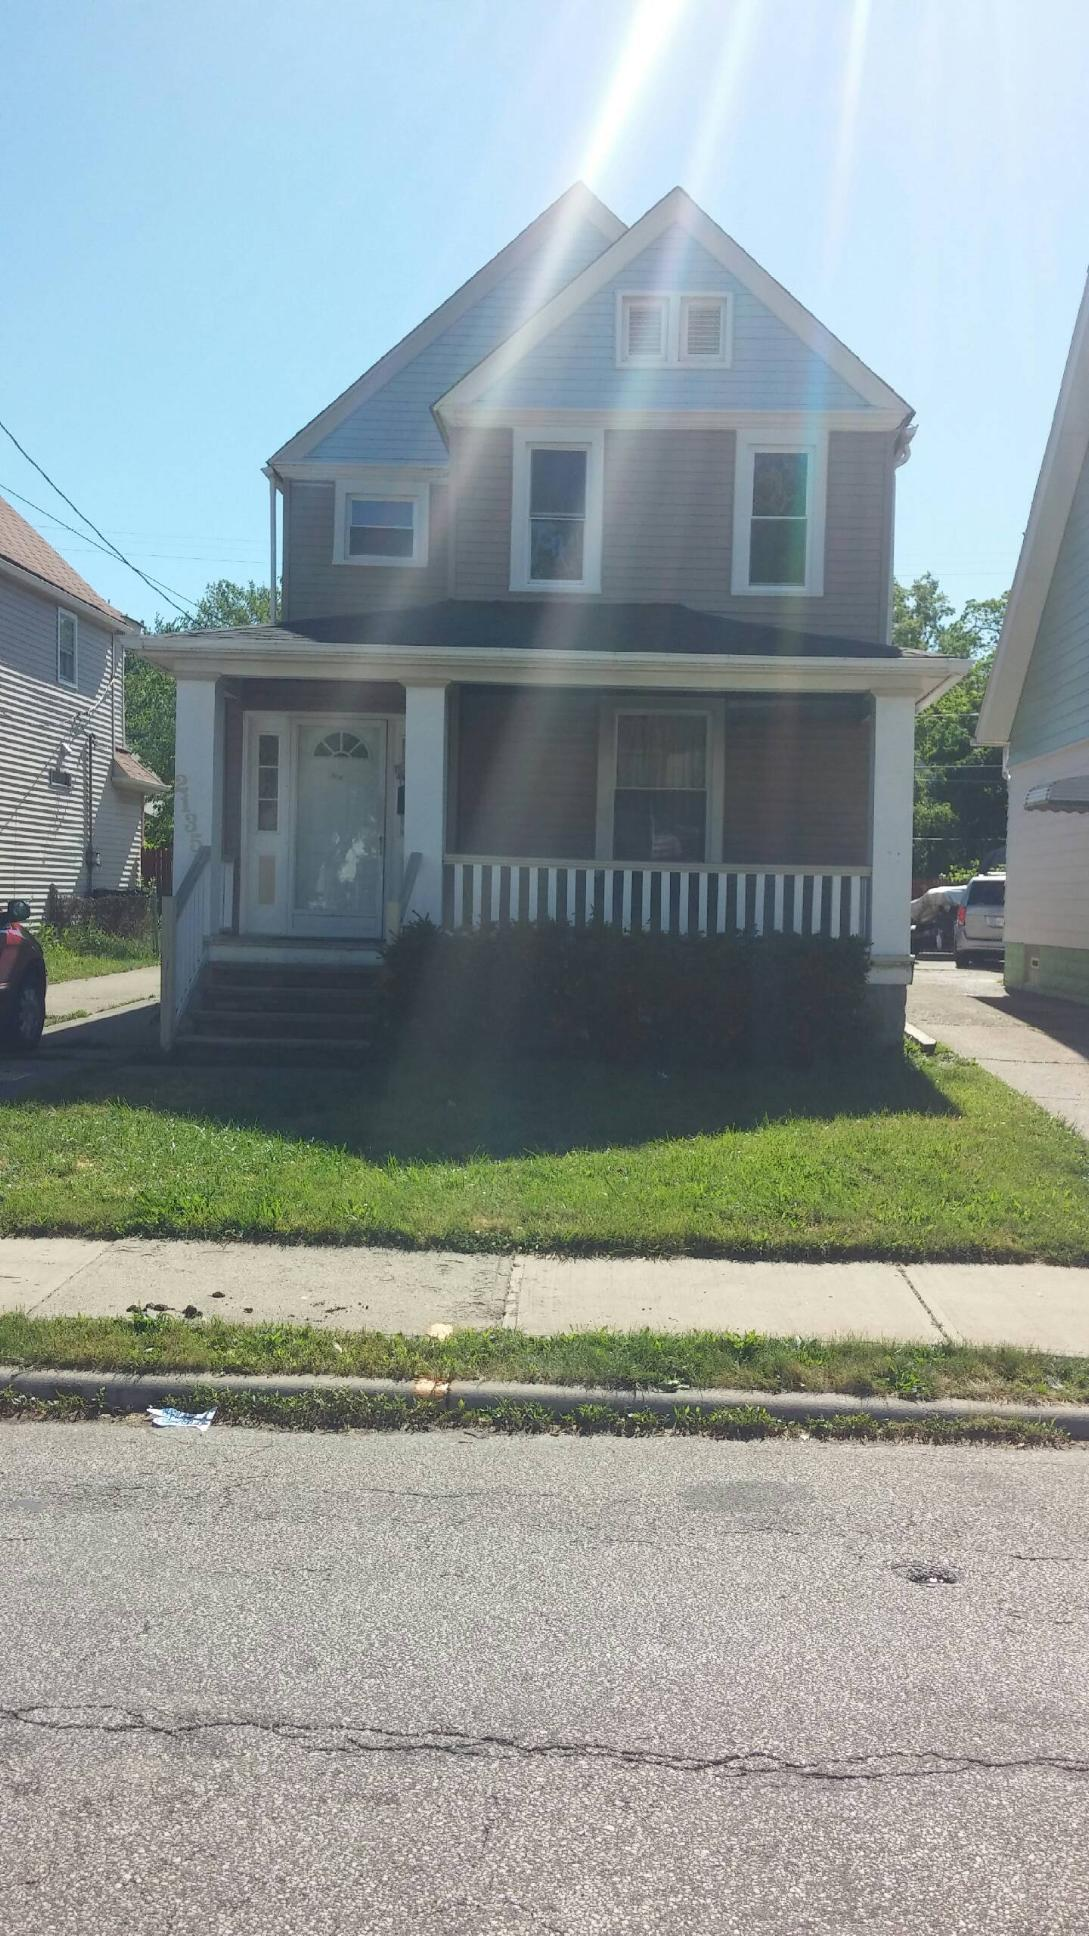 2135 W. 104th St Cleveland, OH 44102